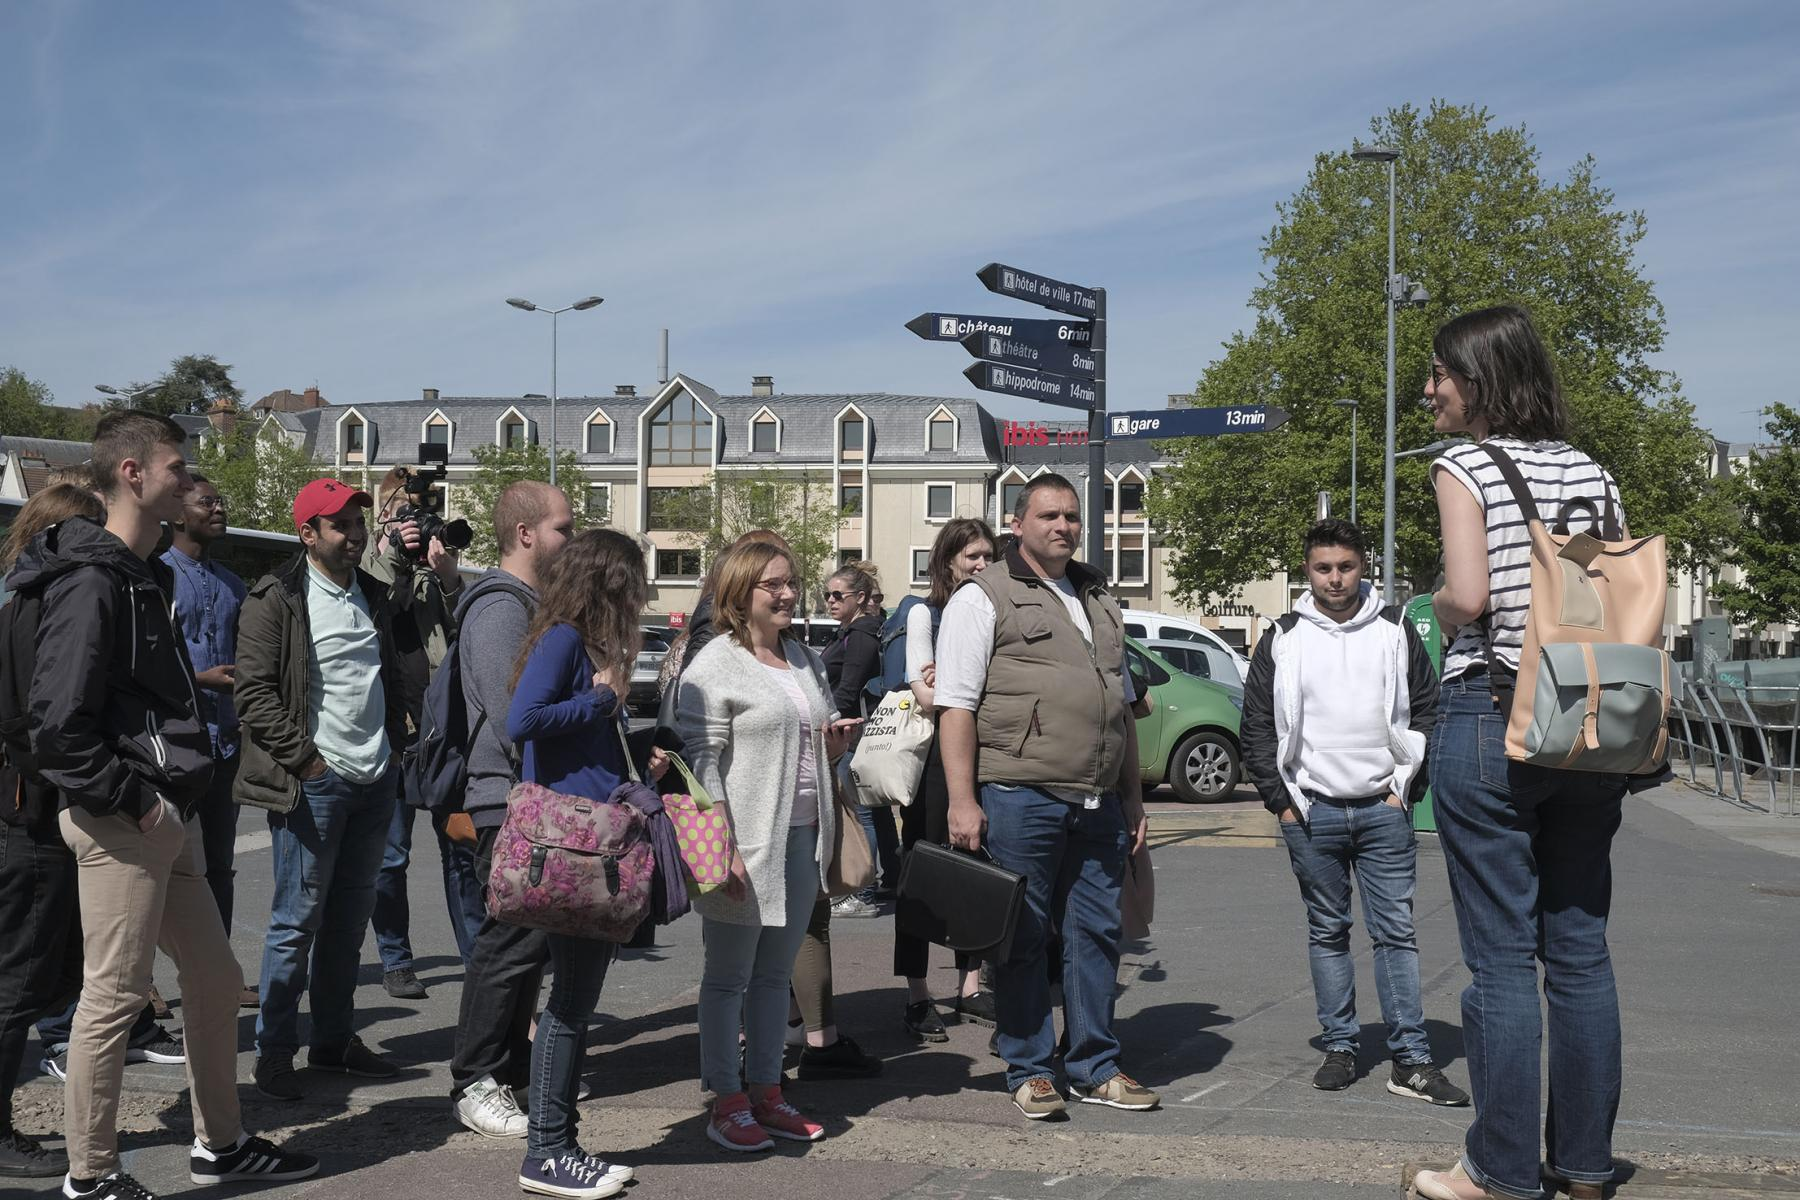 Partners and Beneficiaries were taken on a tour of Caen using the PONToon Map App